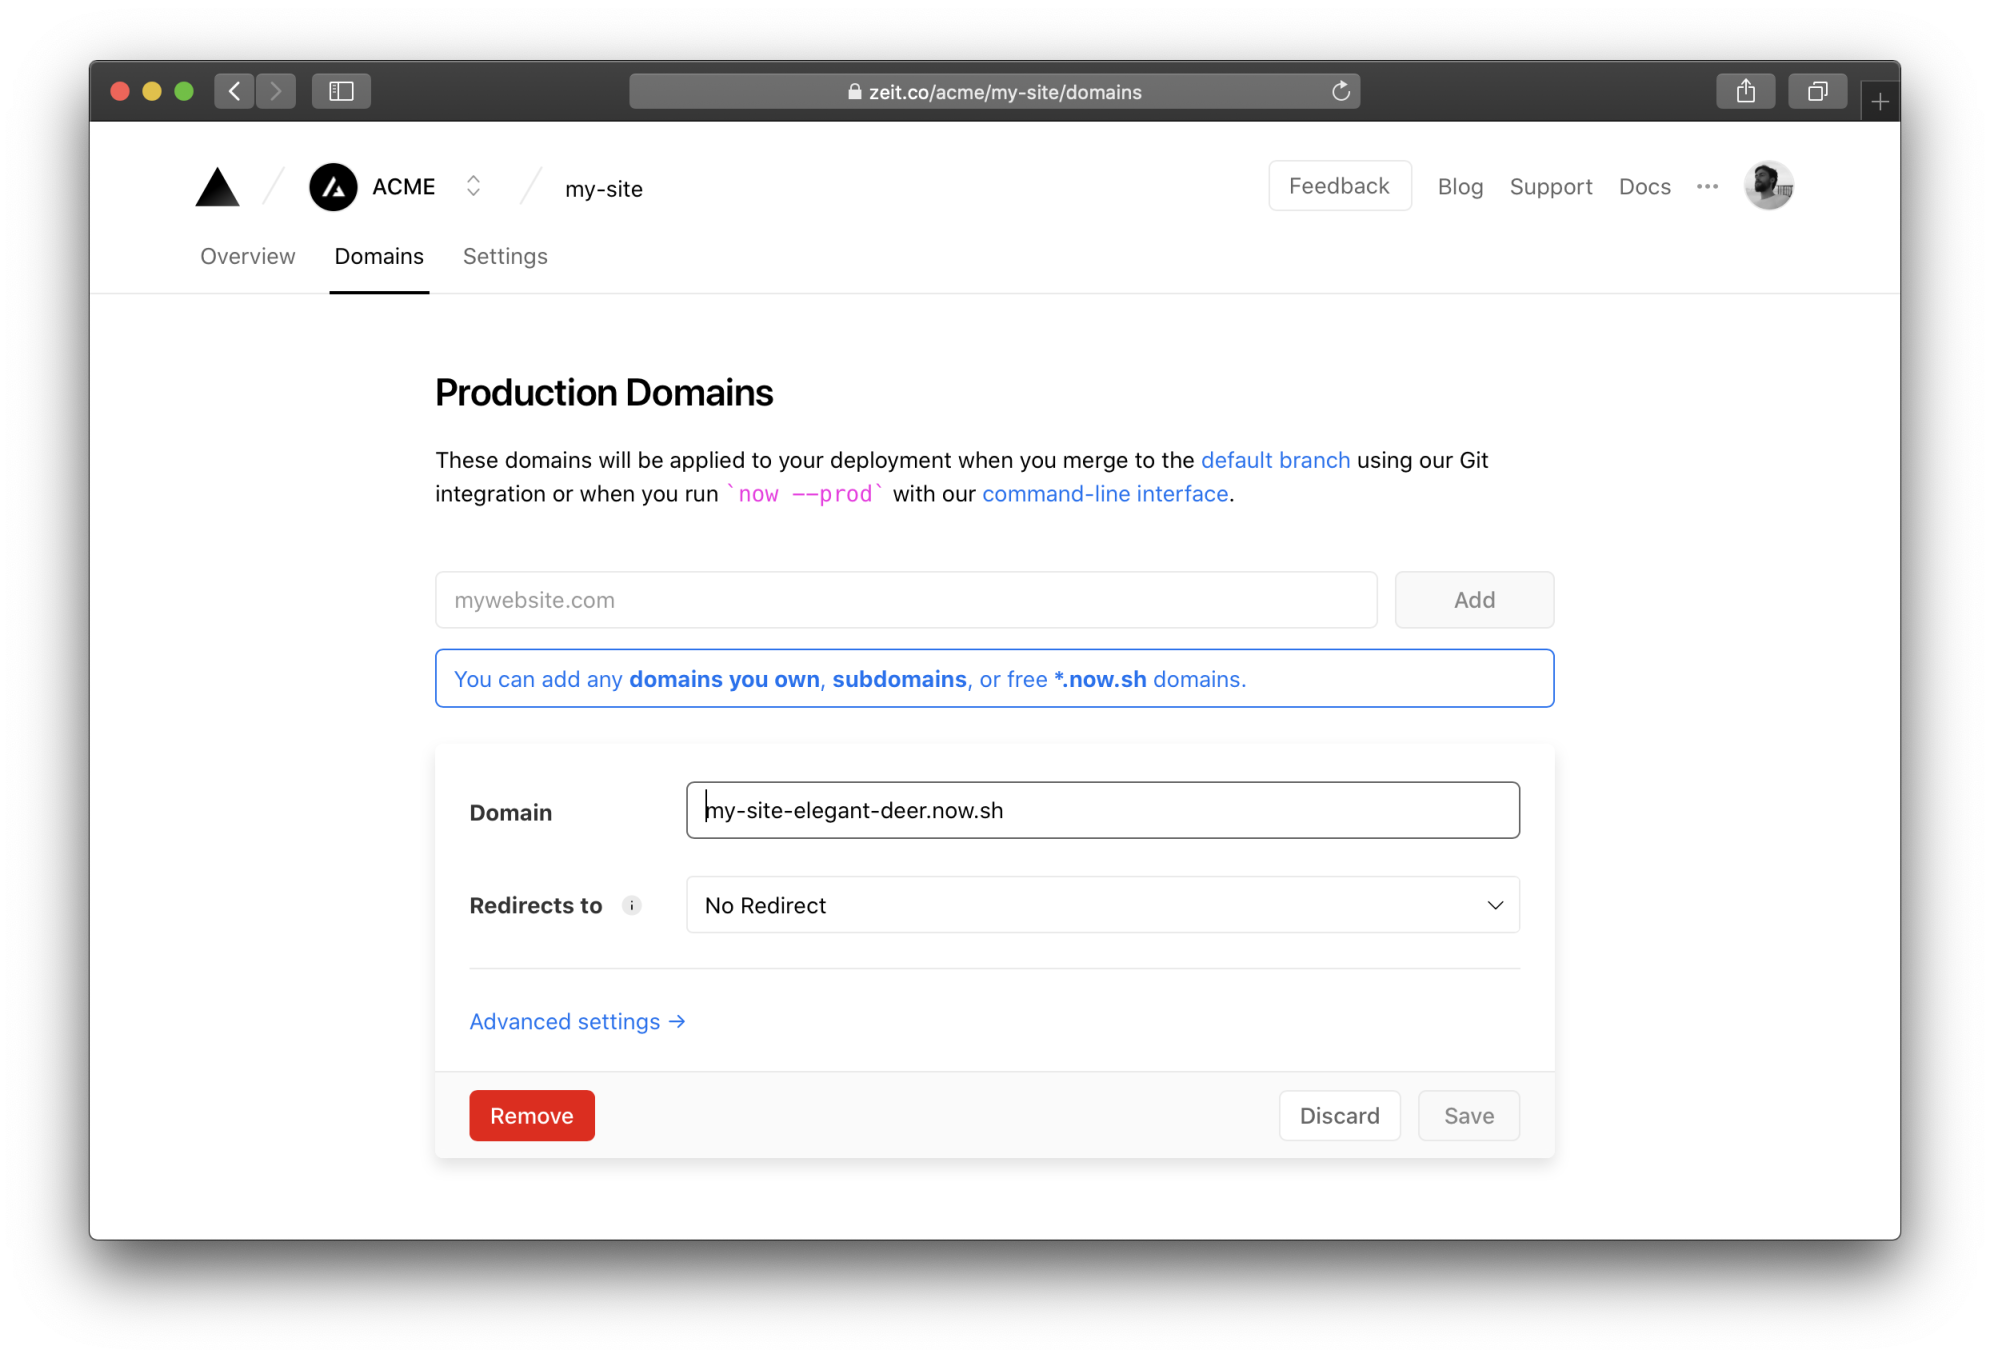 You can edit the default production domain or add a custom domain.